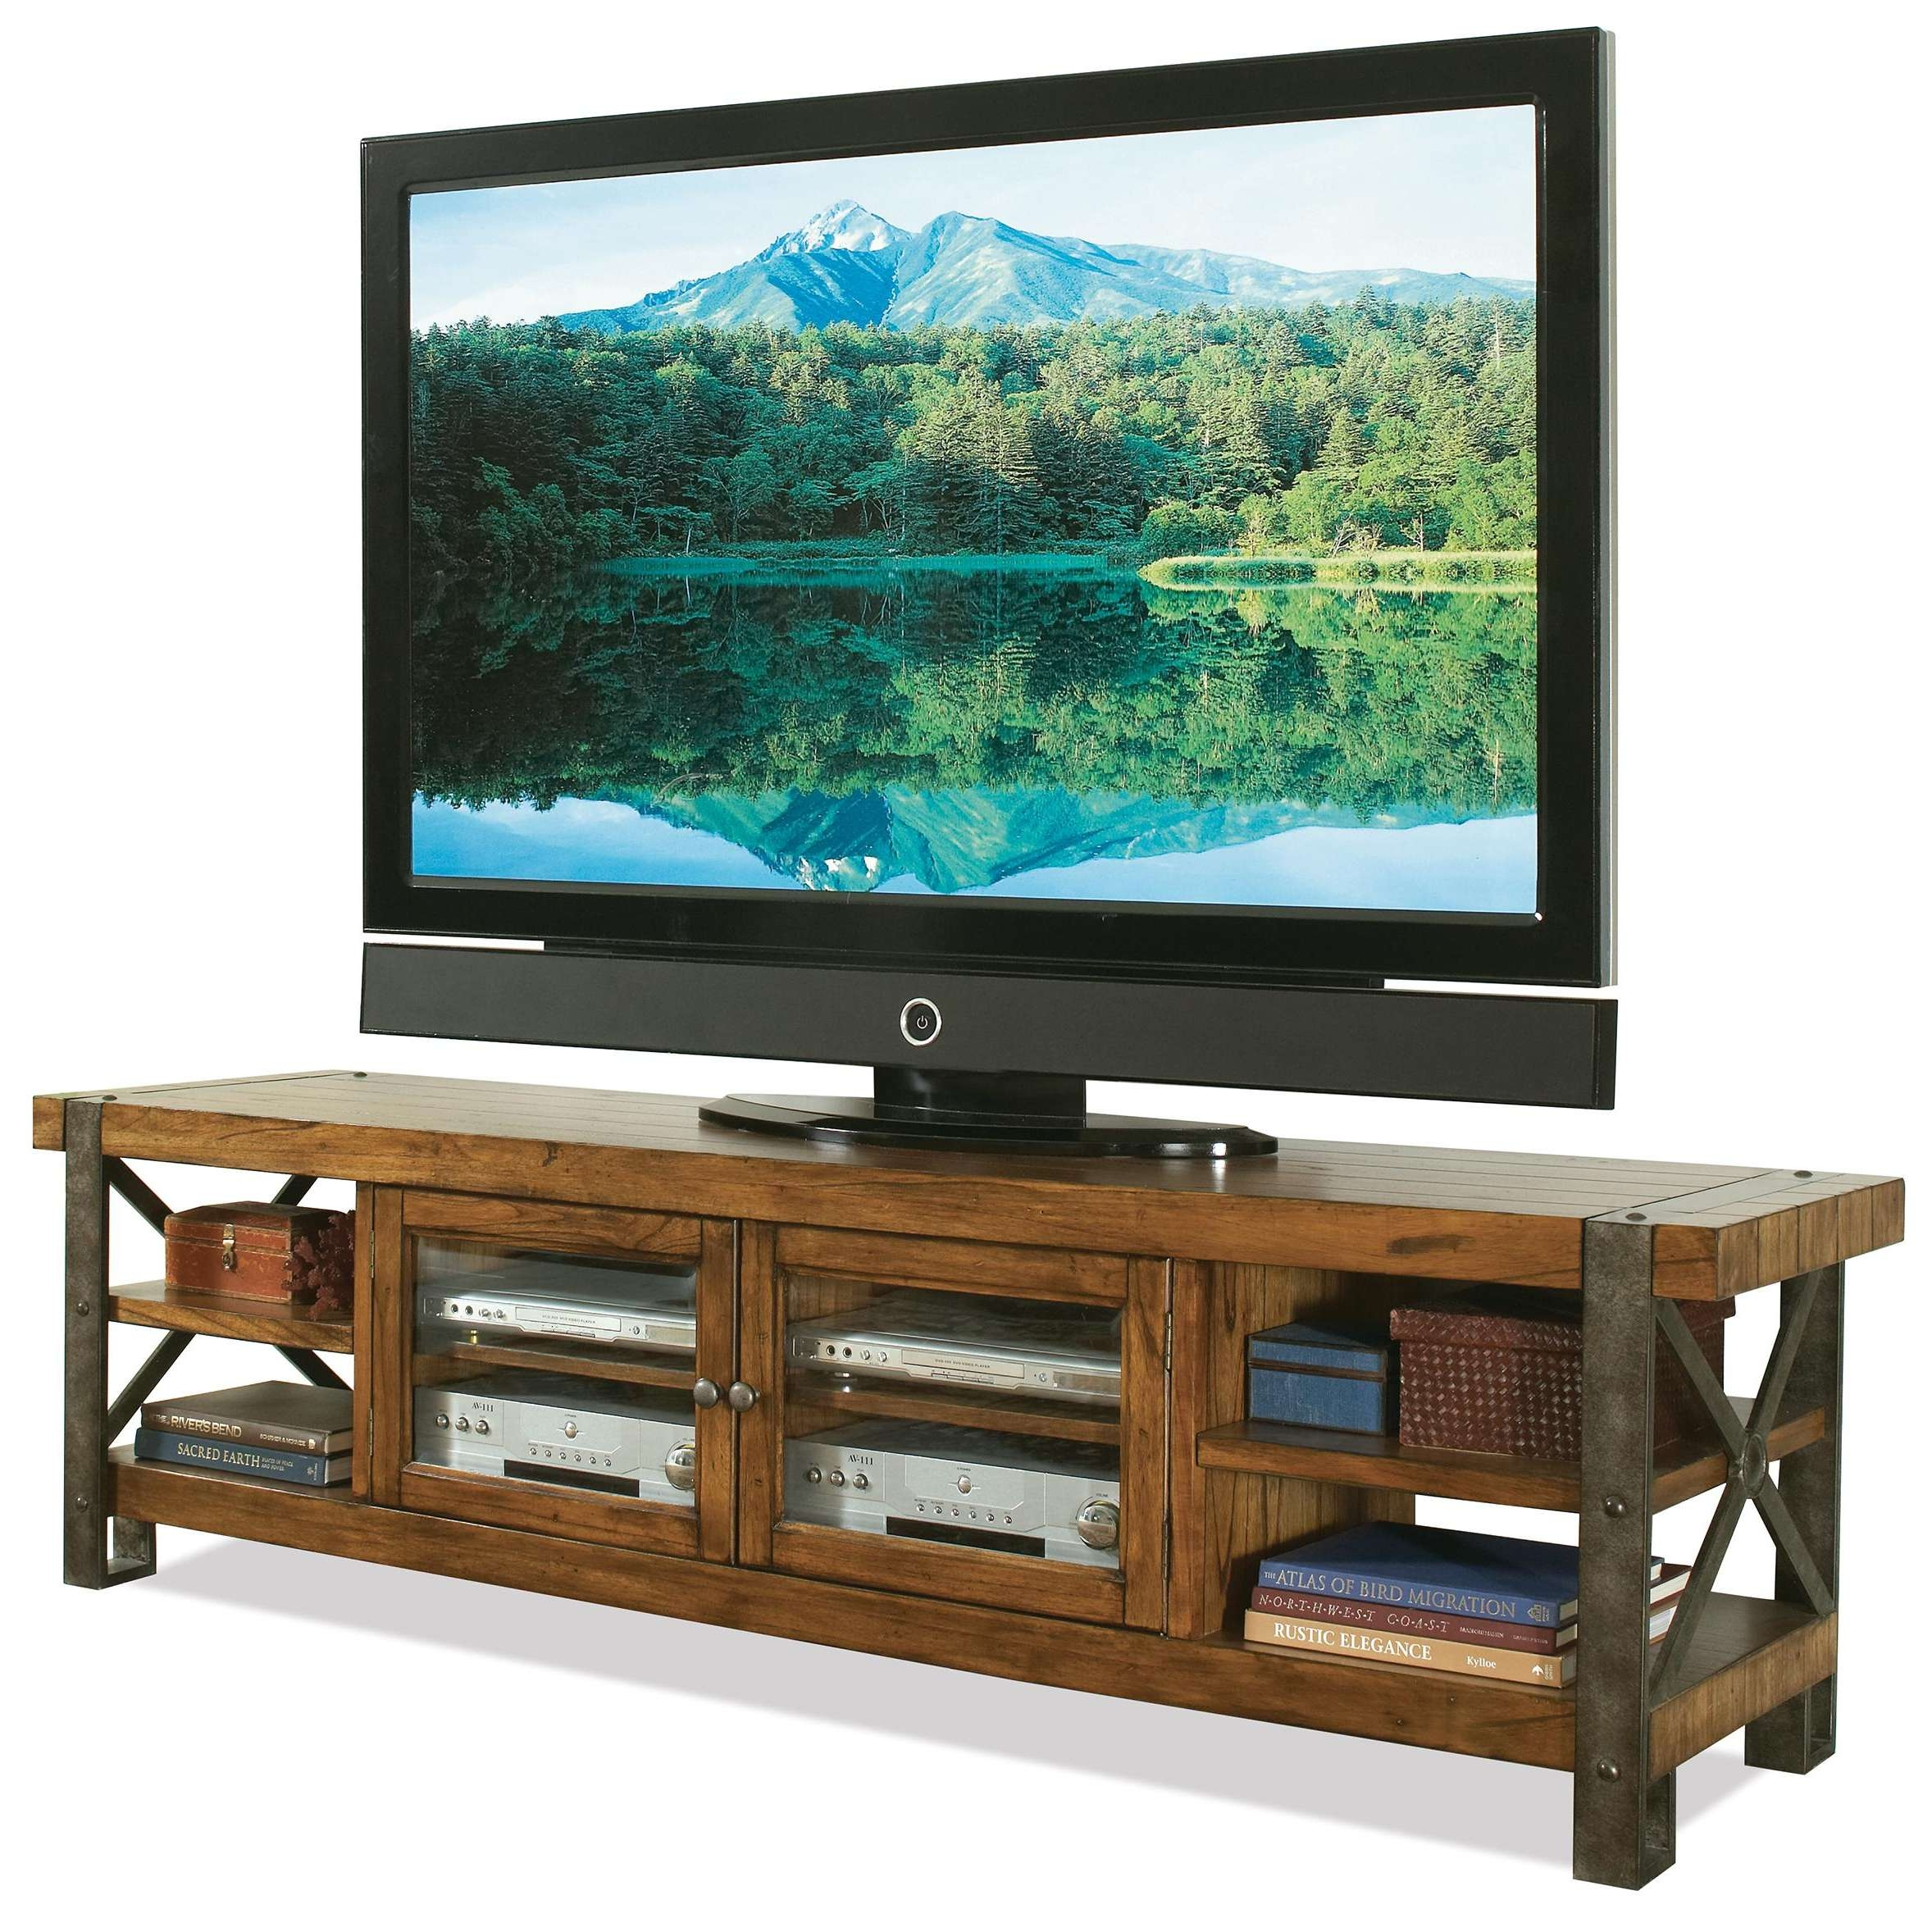 Riverside Furniture Sierra Rustic 80 In Tv Console W/ Glass Doors Inside Rustic Wood Tv Cabinets (View 9 of 20)